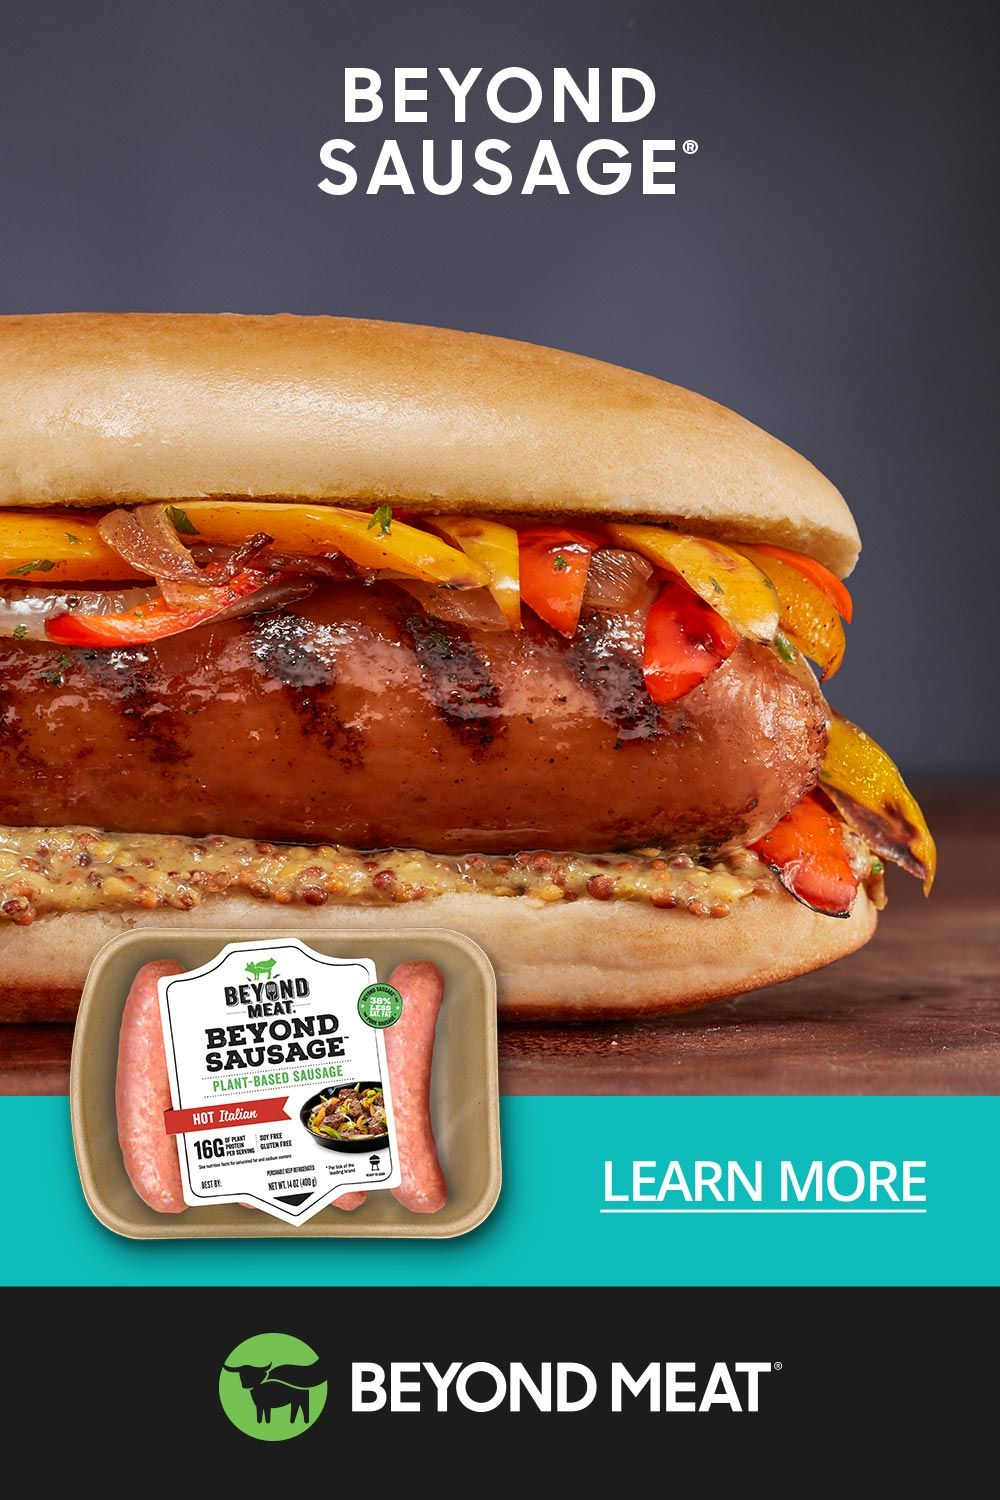 Beyond Sausage - The missing link that serves up all the